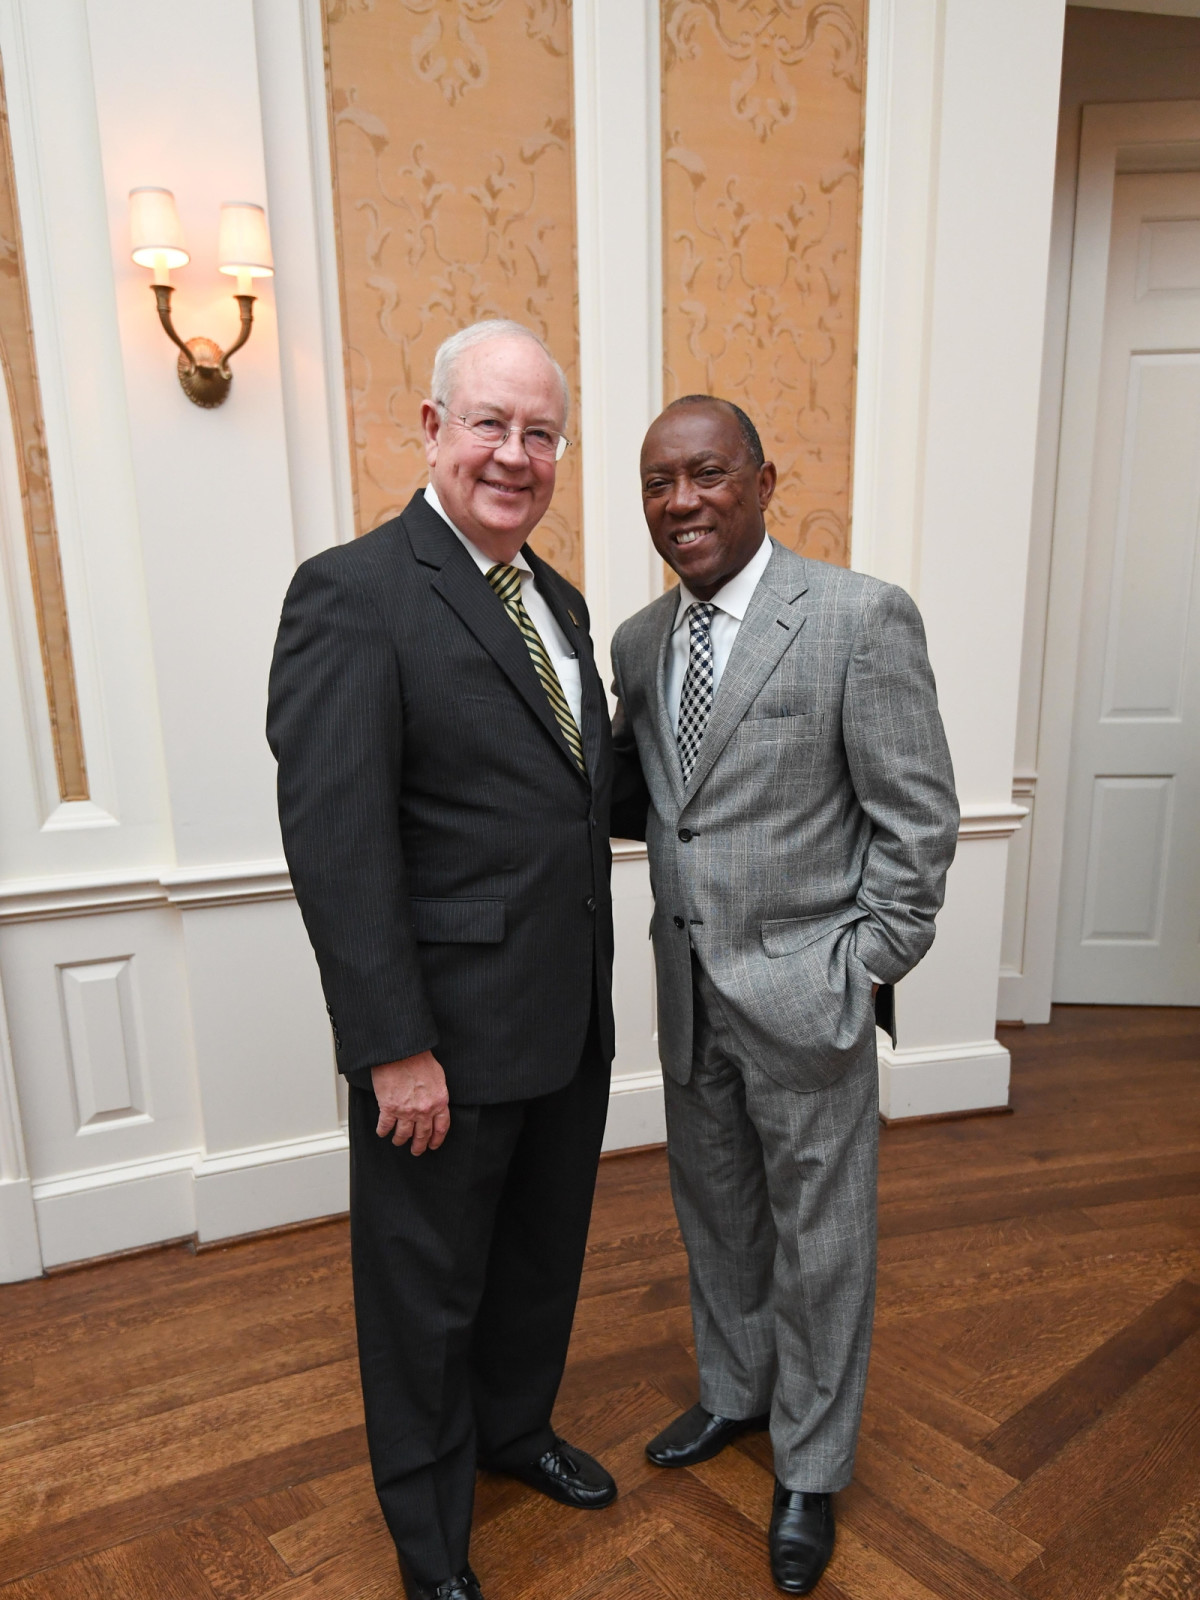 Chinquapin gala 5/16 Ken Starr, Mayor Sylvester Turner